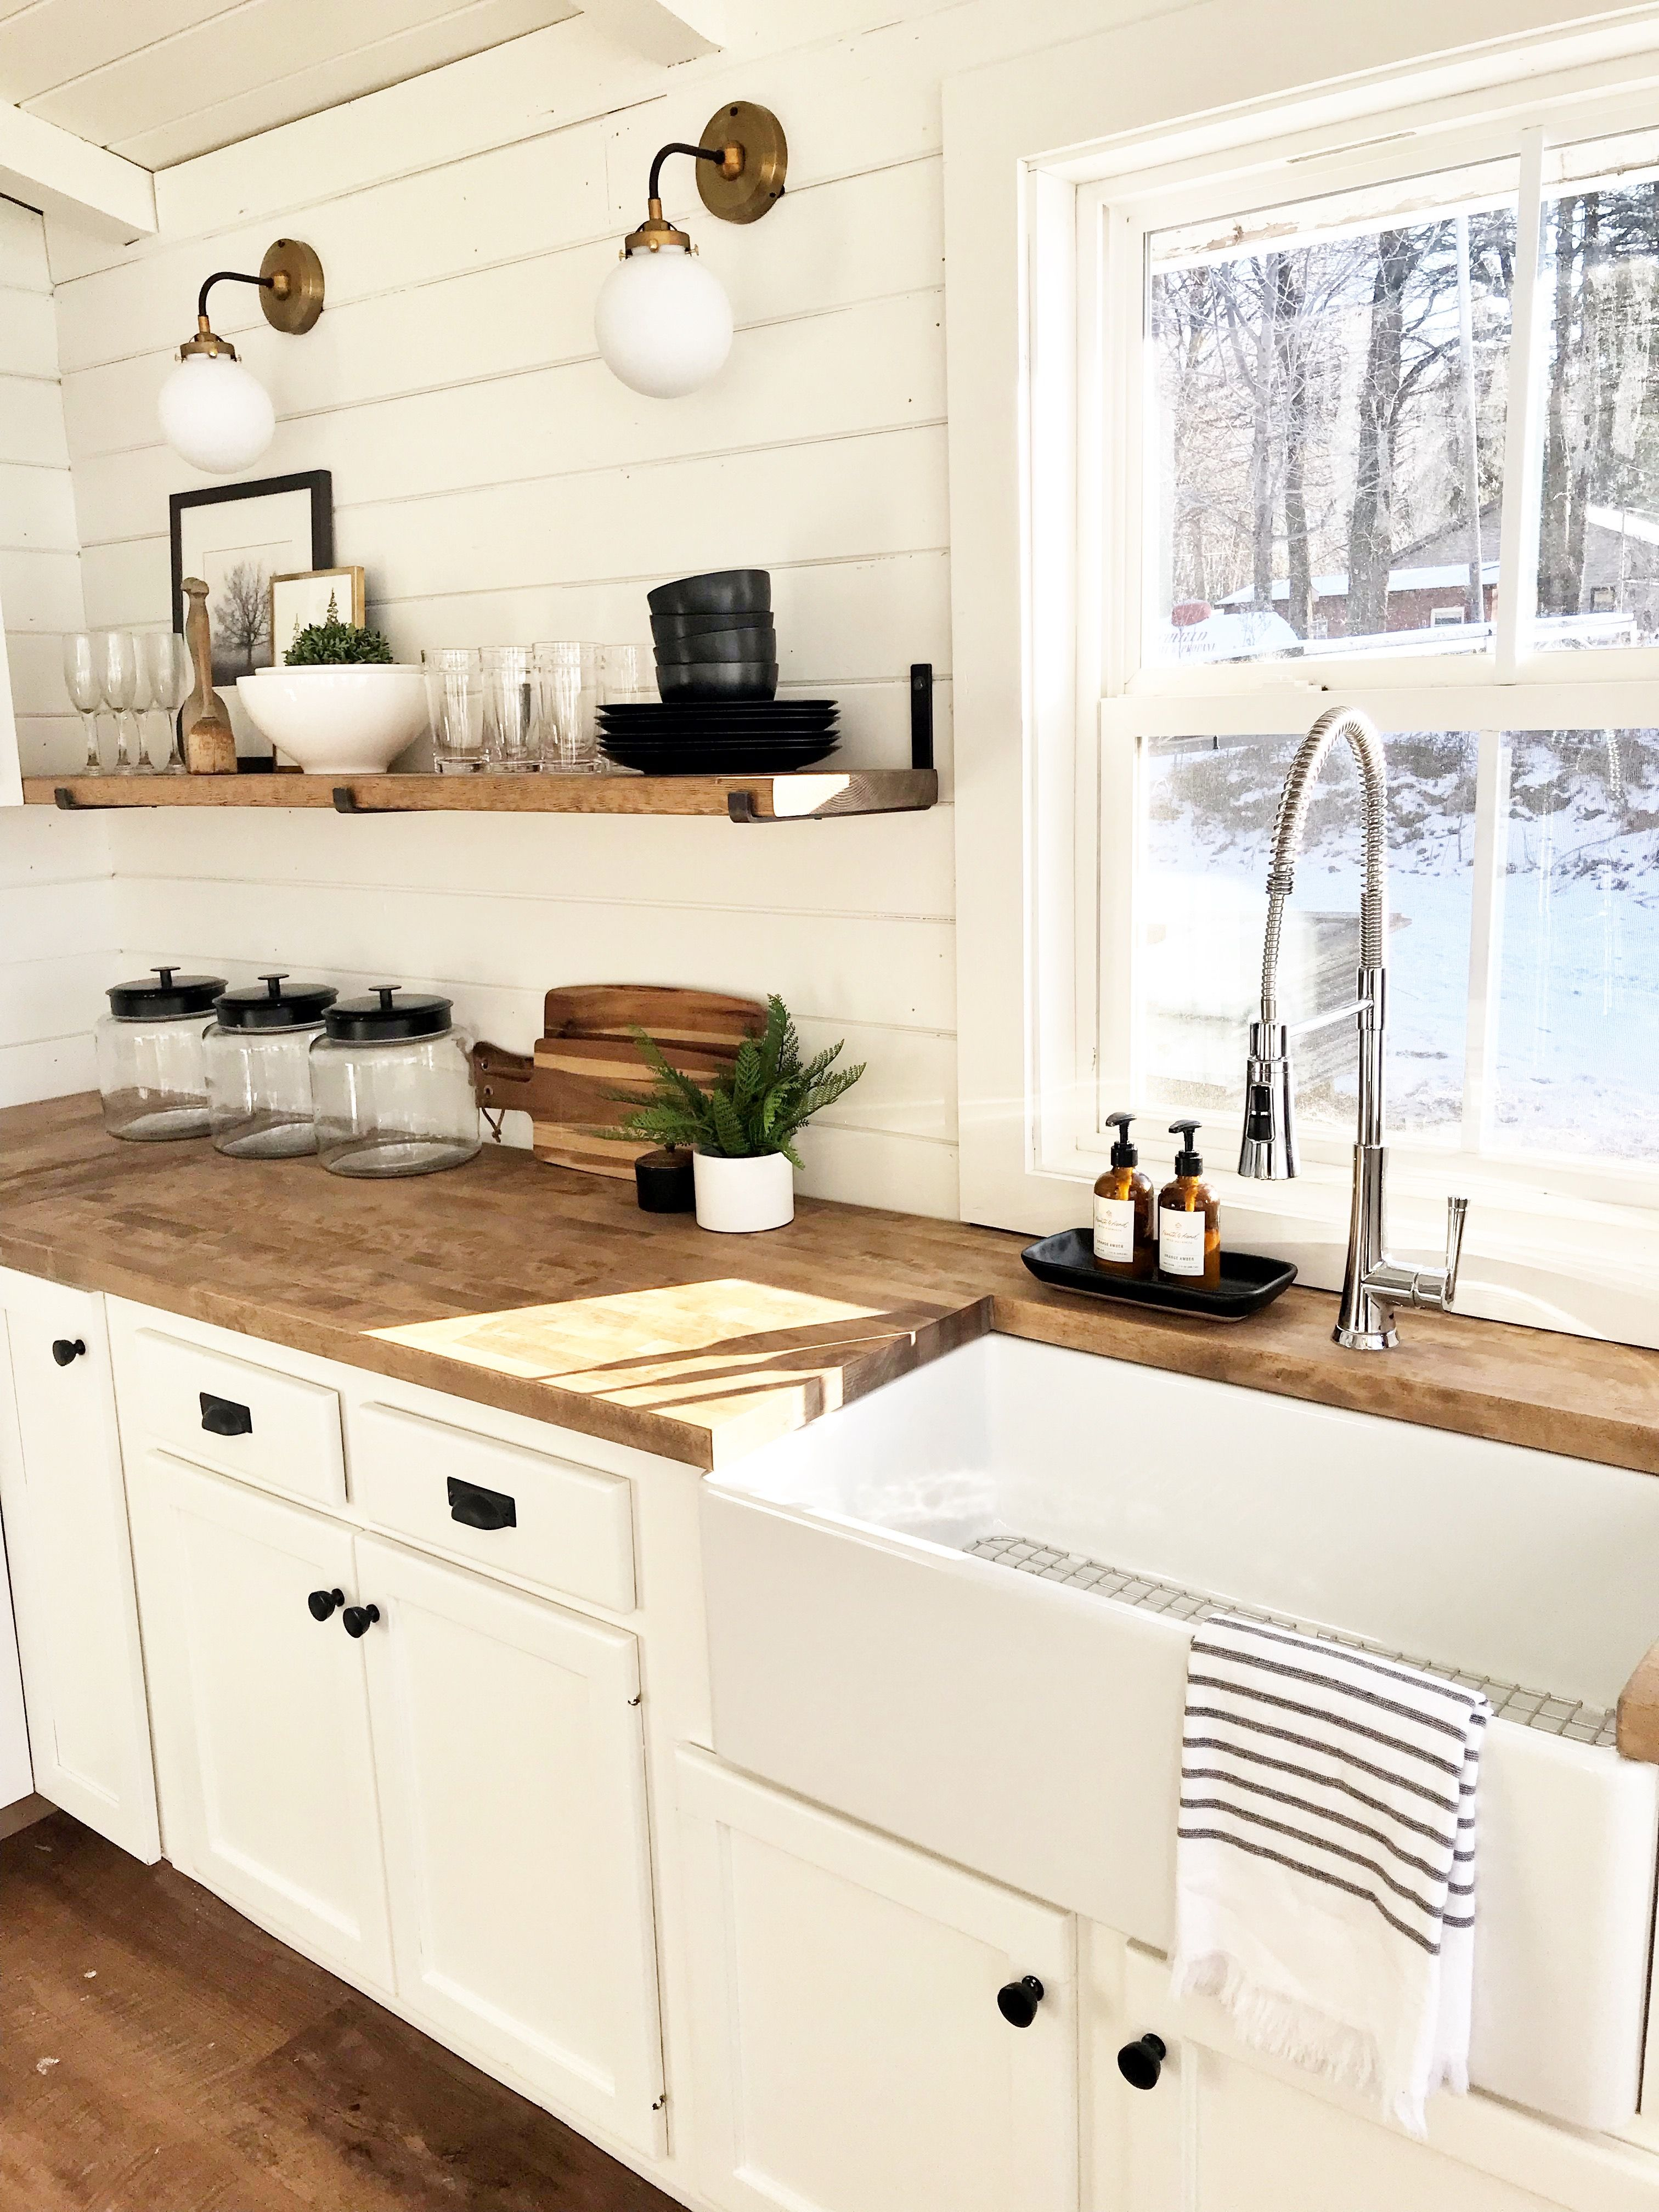 CABIN KITCHEN REVEAL WITH OUR SINKOLOGY SINK